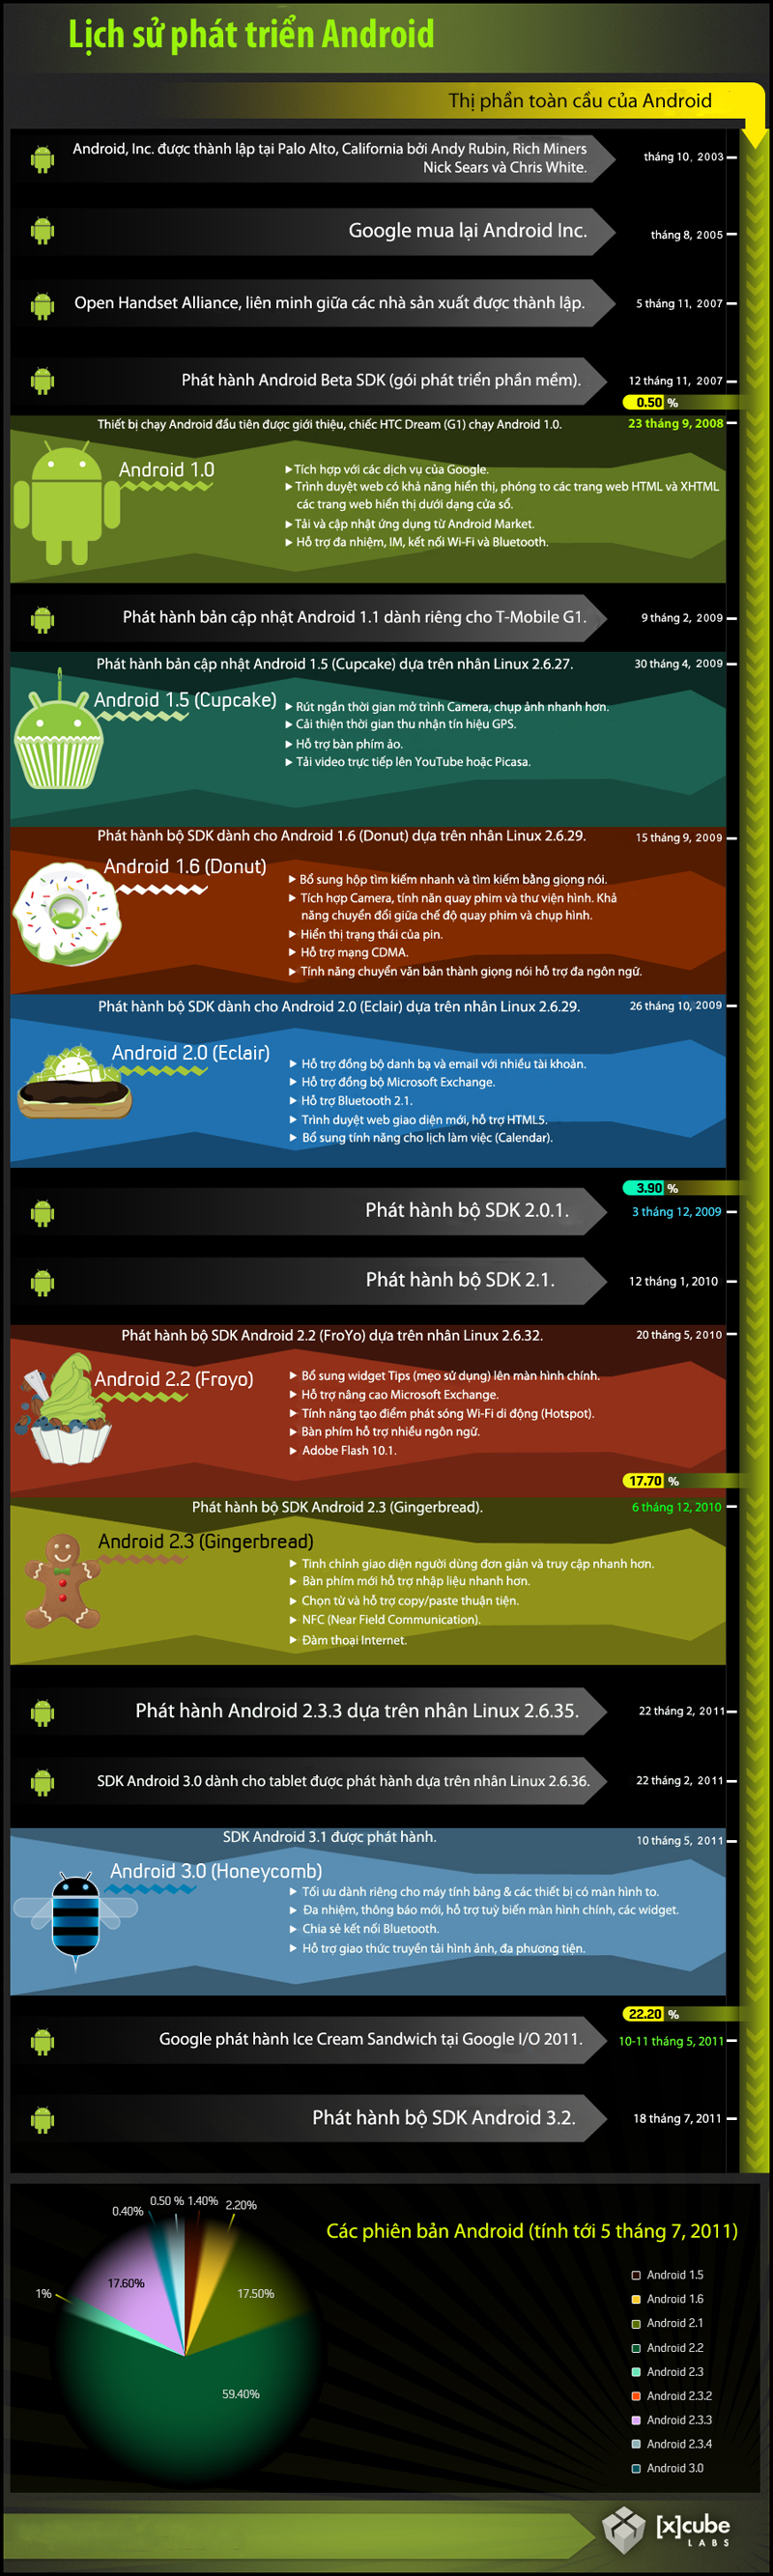 [INFOGRAPHIC] Lịch sử phát triển Android Tinhte.vn_4e3416d789ea5_android-infograph-live